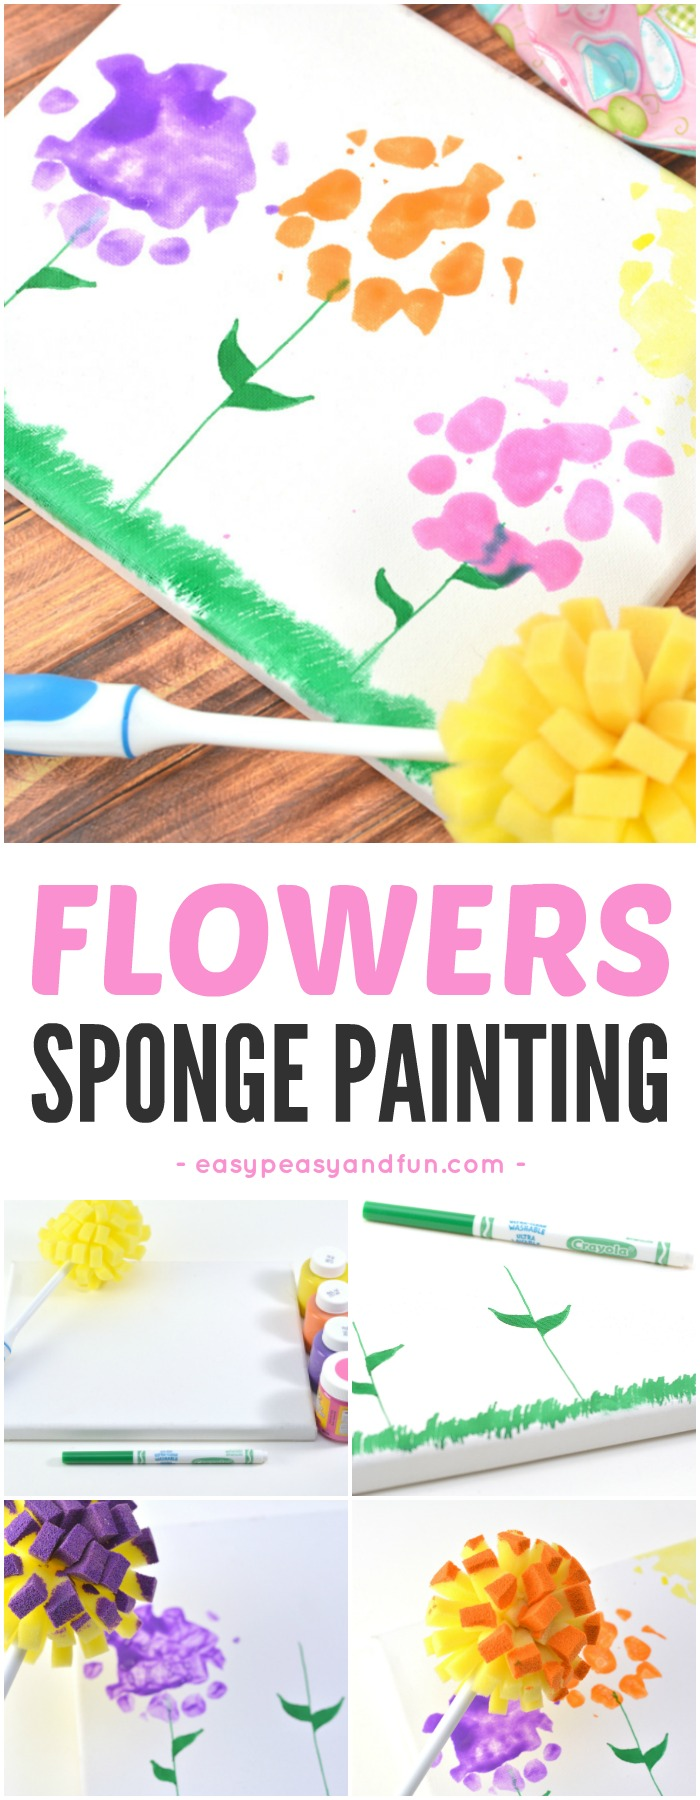 Spring flowers sponge painting easy peasy and fun spring flowers sponge painting canvas art idea for kids canvasart paintingforkids springcraftsforkids mightylinksfo Choice Image